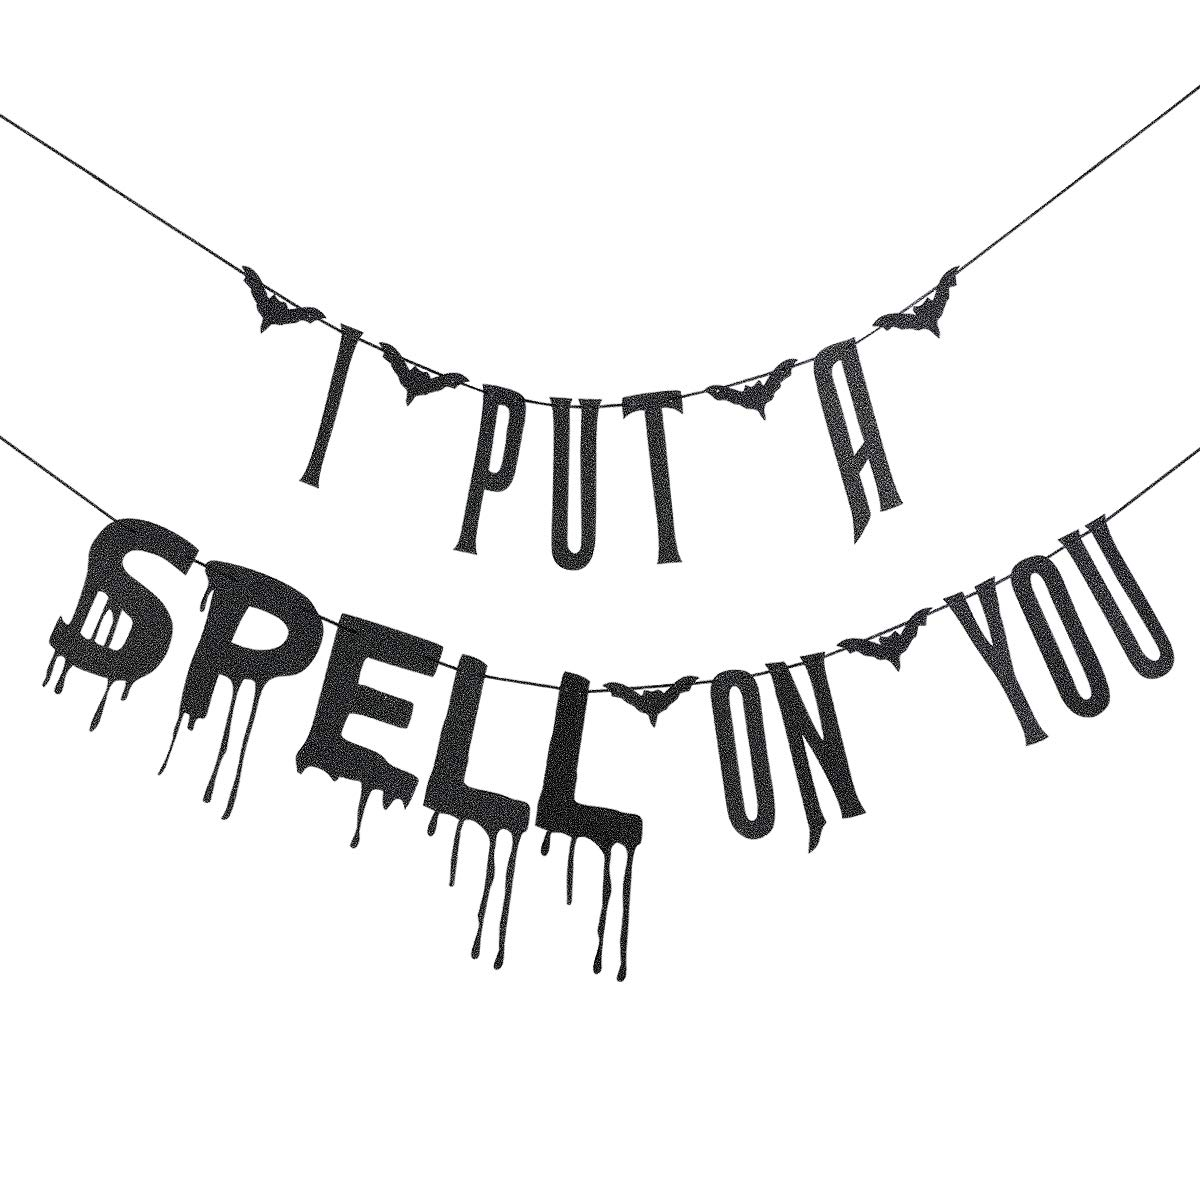 Black Glittery I Put A Spell On You Banner,Halloween Party Decorations